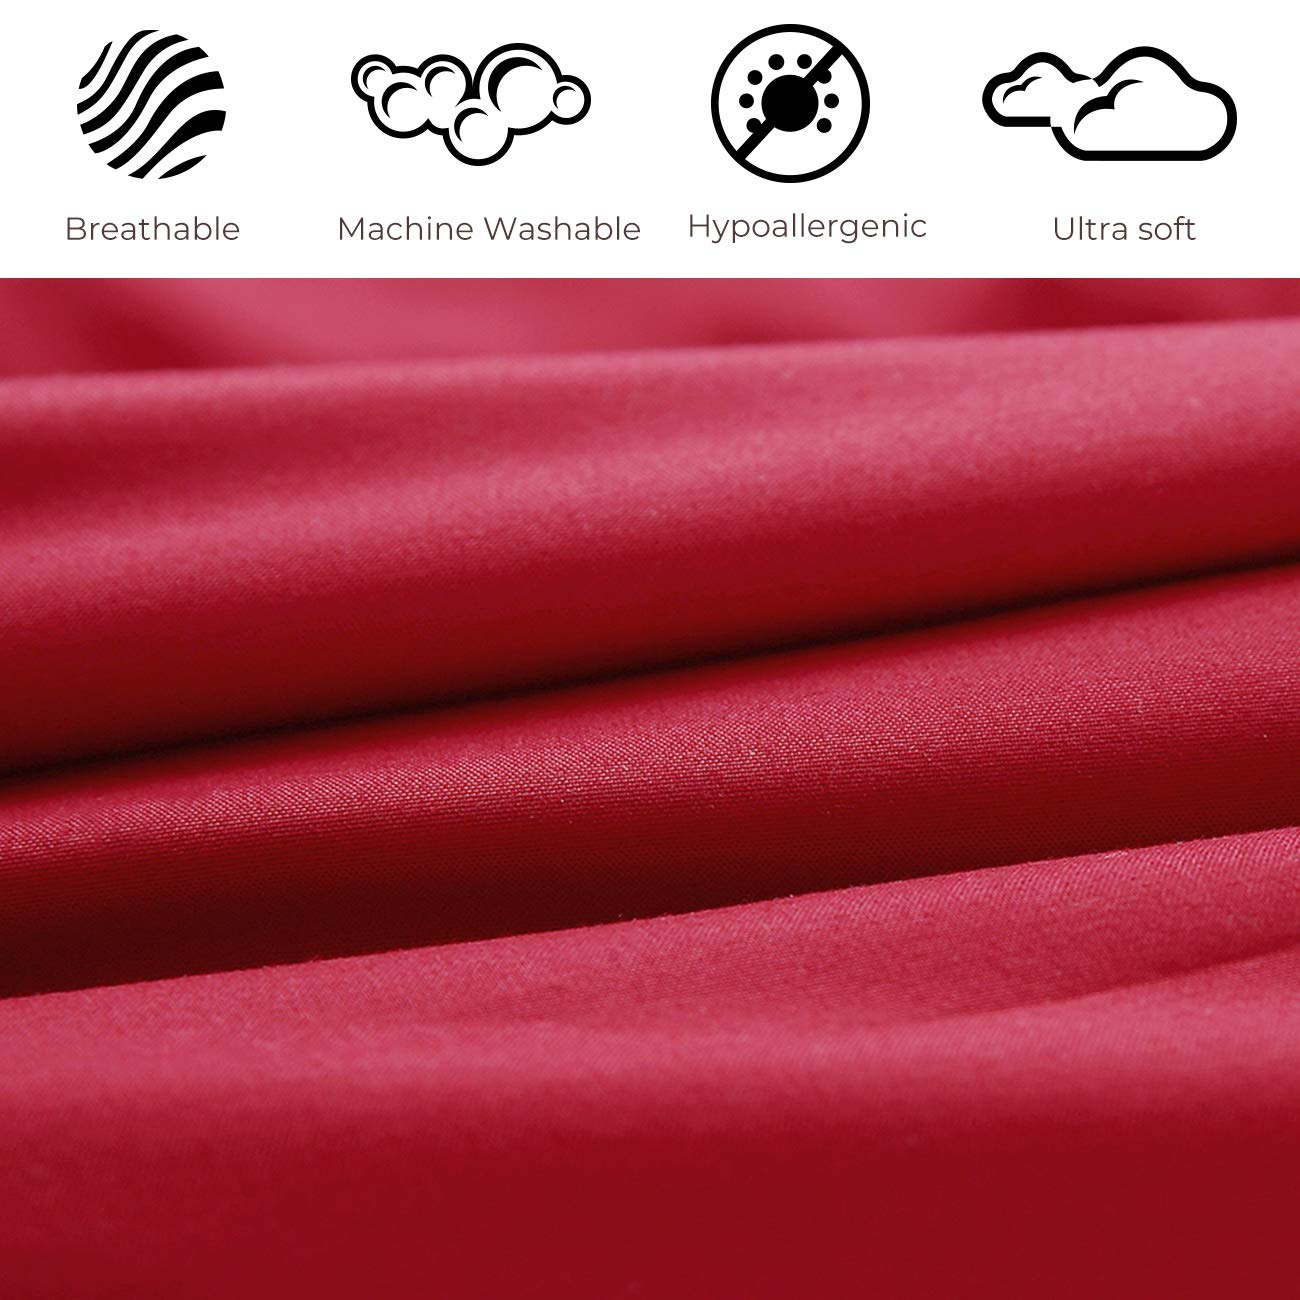 HONEYMOON HOME FASHIONS Queen Reversible Comforter Set, 3 Pieces, Red and Tan